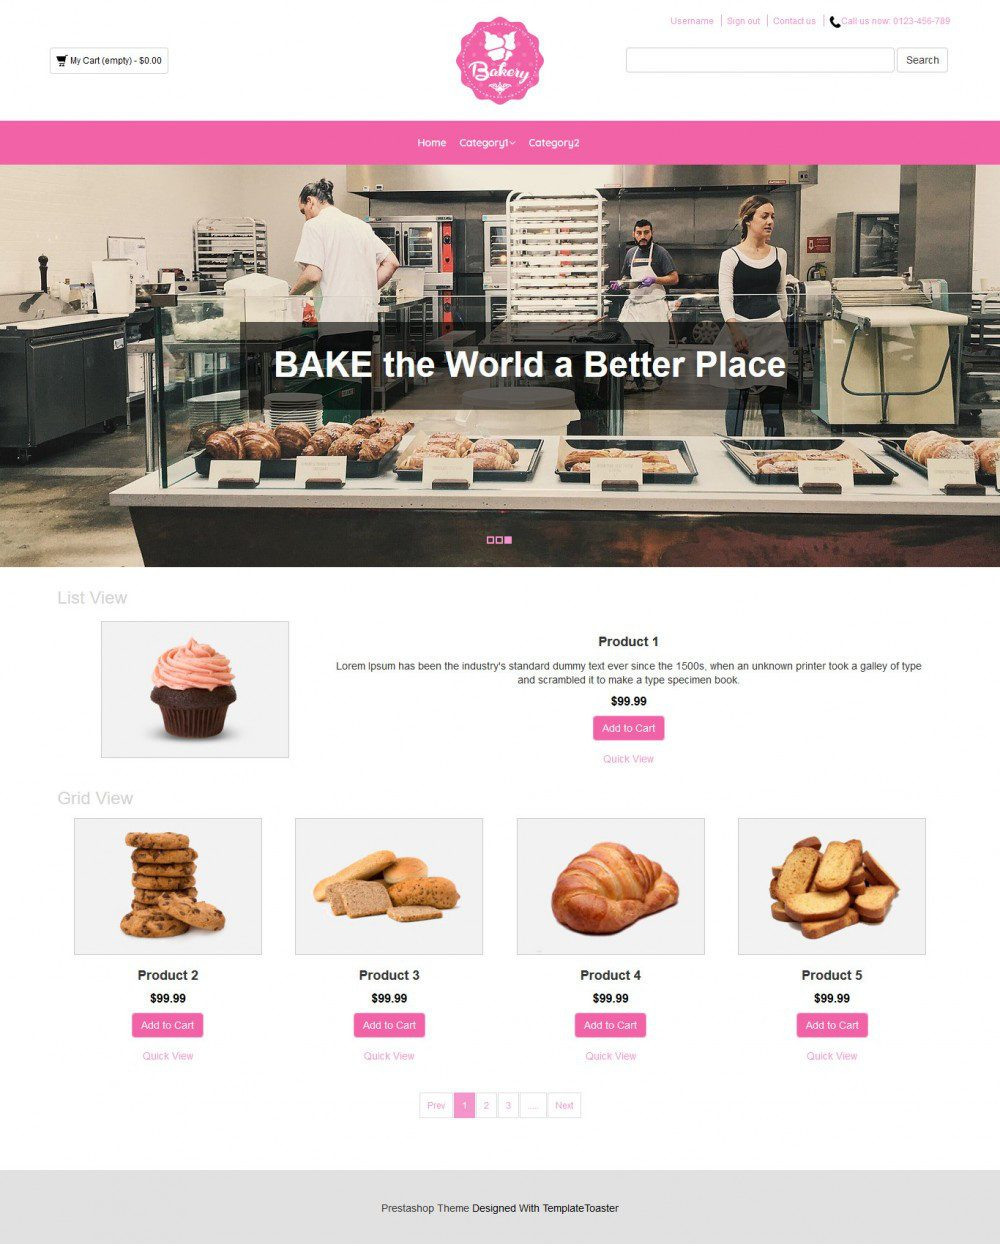 Bakery Cake Online Shop Virtuemart Template